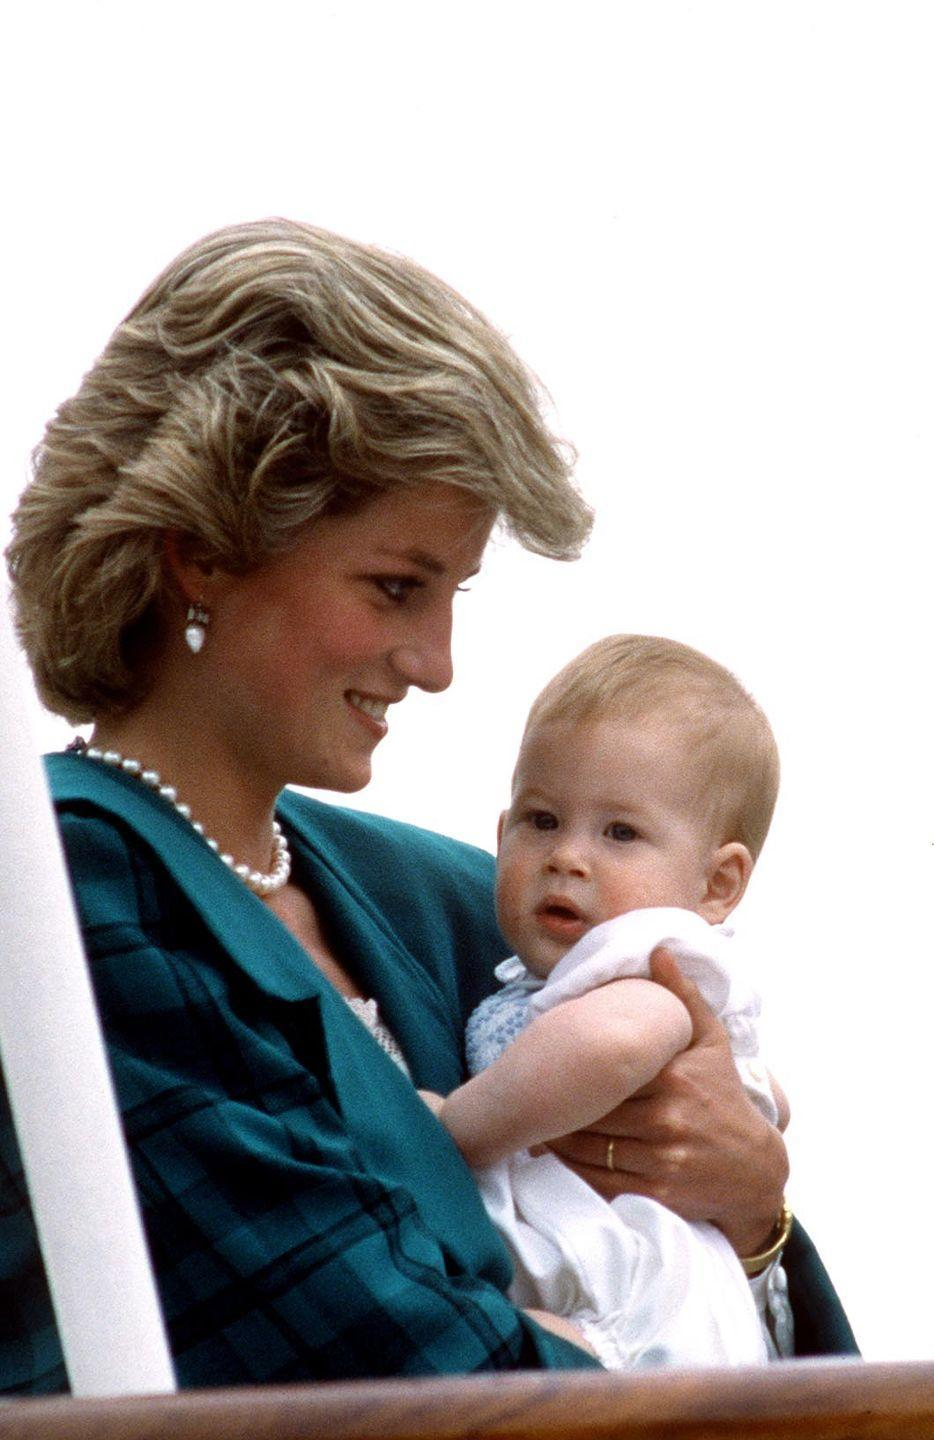 """<p>Harry, 8 months, is cradled by Princess Diana aboard The Royal Yacht Britannia during an official tour of Italy. In the 2017 HBO documentary, <em>Diana, Our Mother: Her Life and Legacy</em>, Harry said of his mother, """"She would just engulf you and squeeze you as tight as possible. And being as short as I was then, there was no escape; you were there and you were there for as long as she wanted to hold you.""""</p>"""